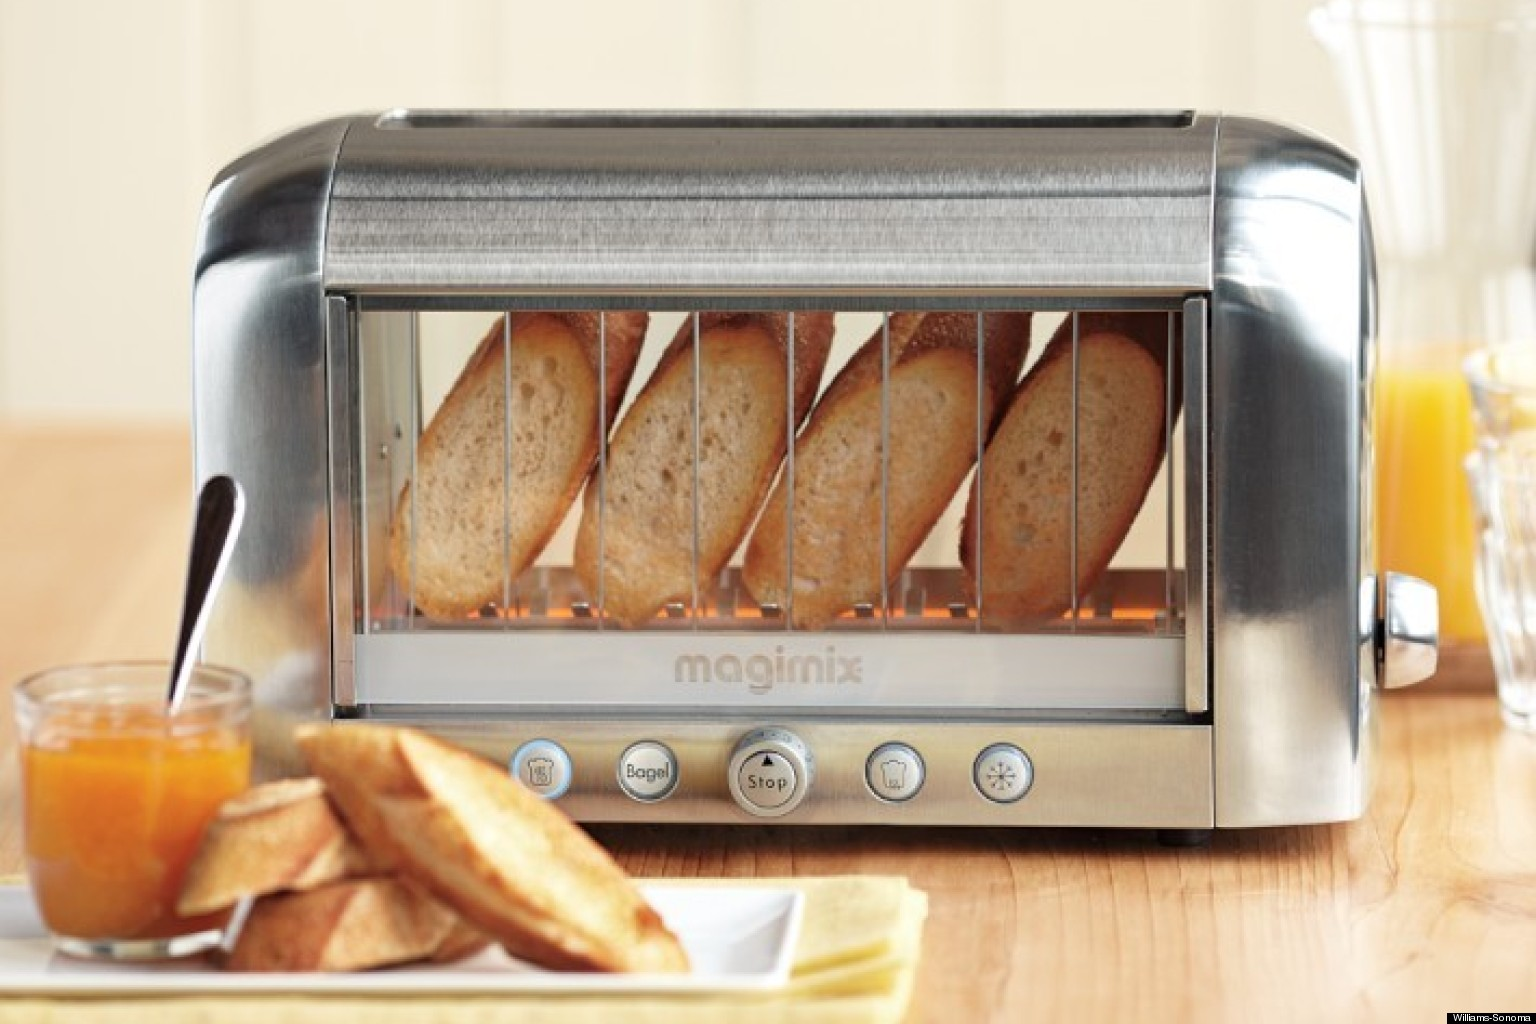 See Thru Tv See Through Toaster The Magimix By Robot Coupe Vision Toaster Is